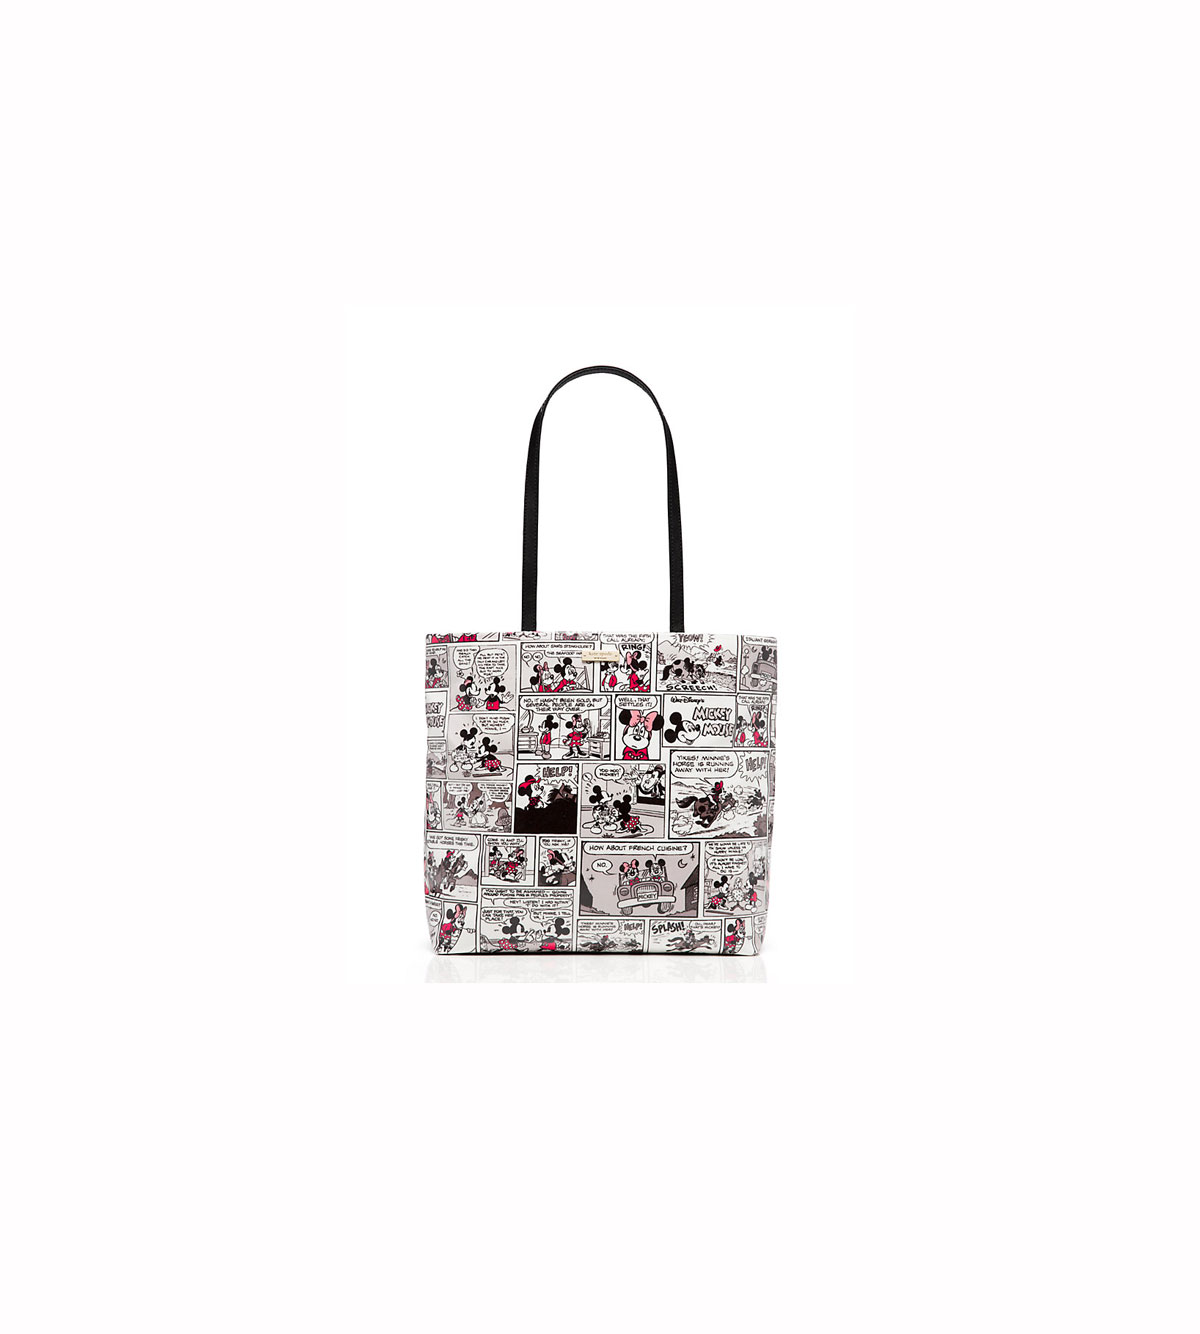 Kate Spade Minnie Comic Tote